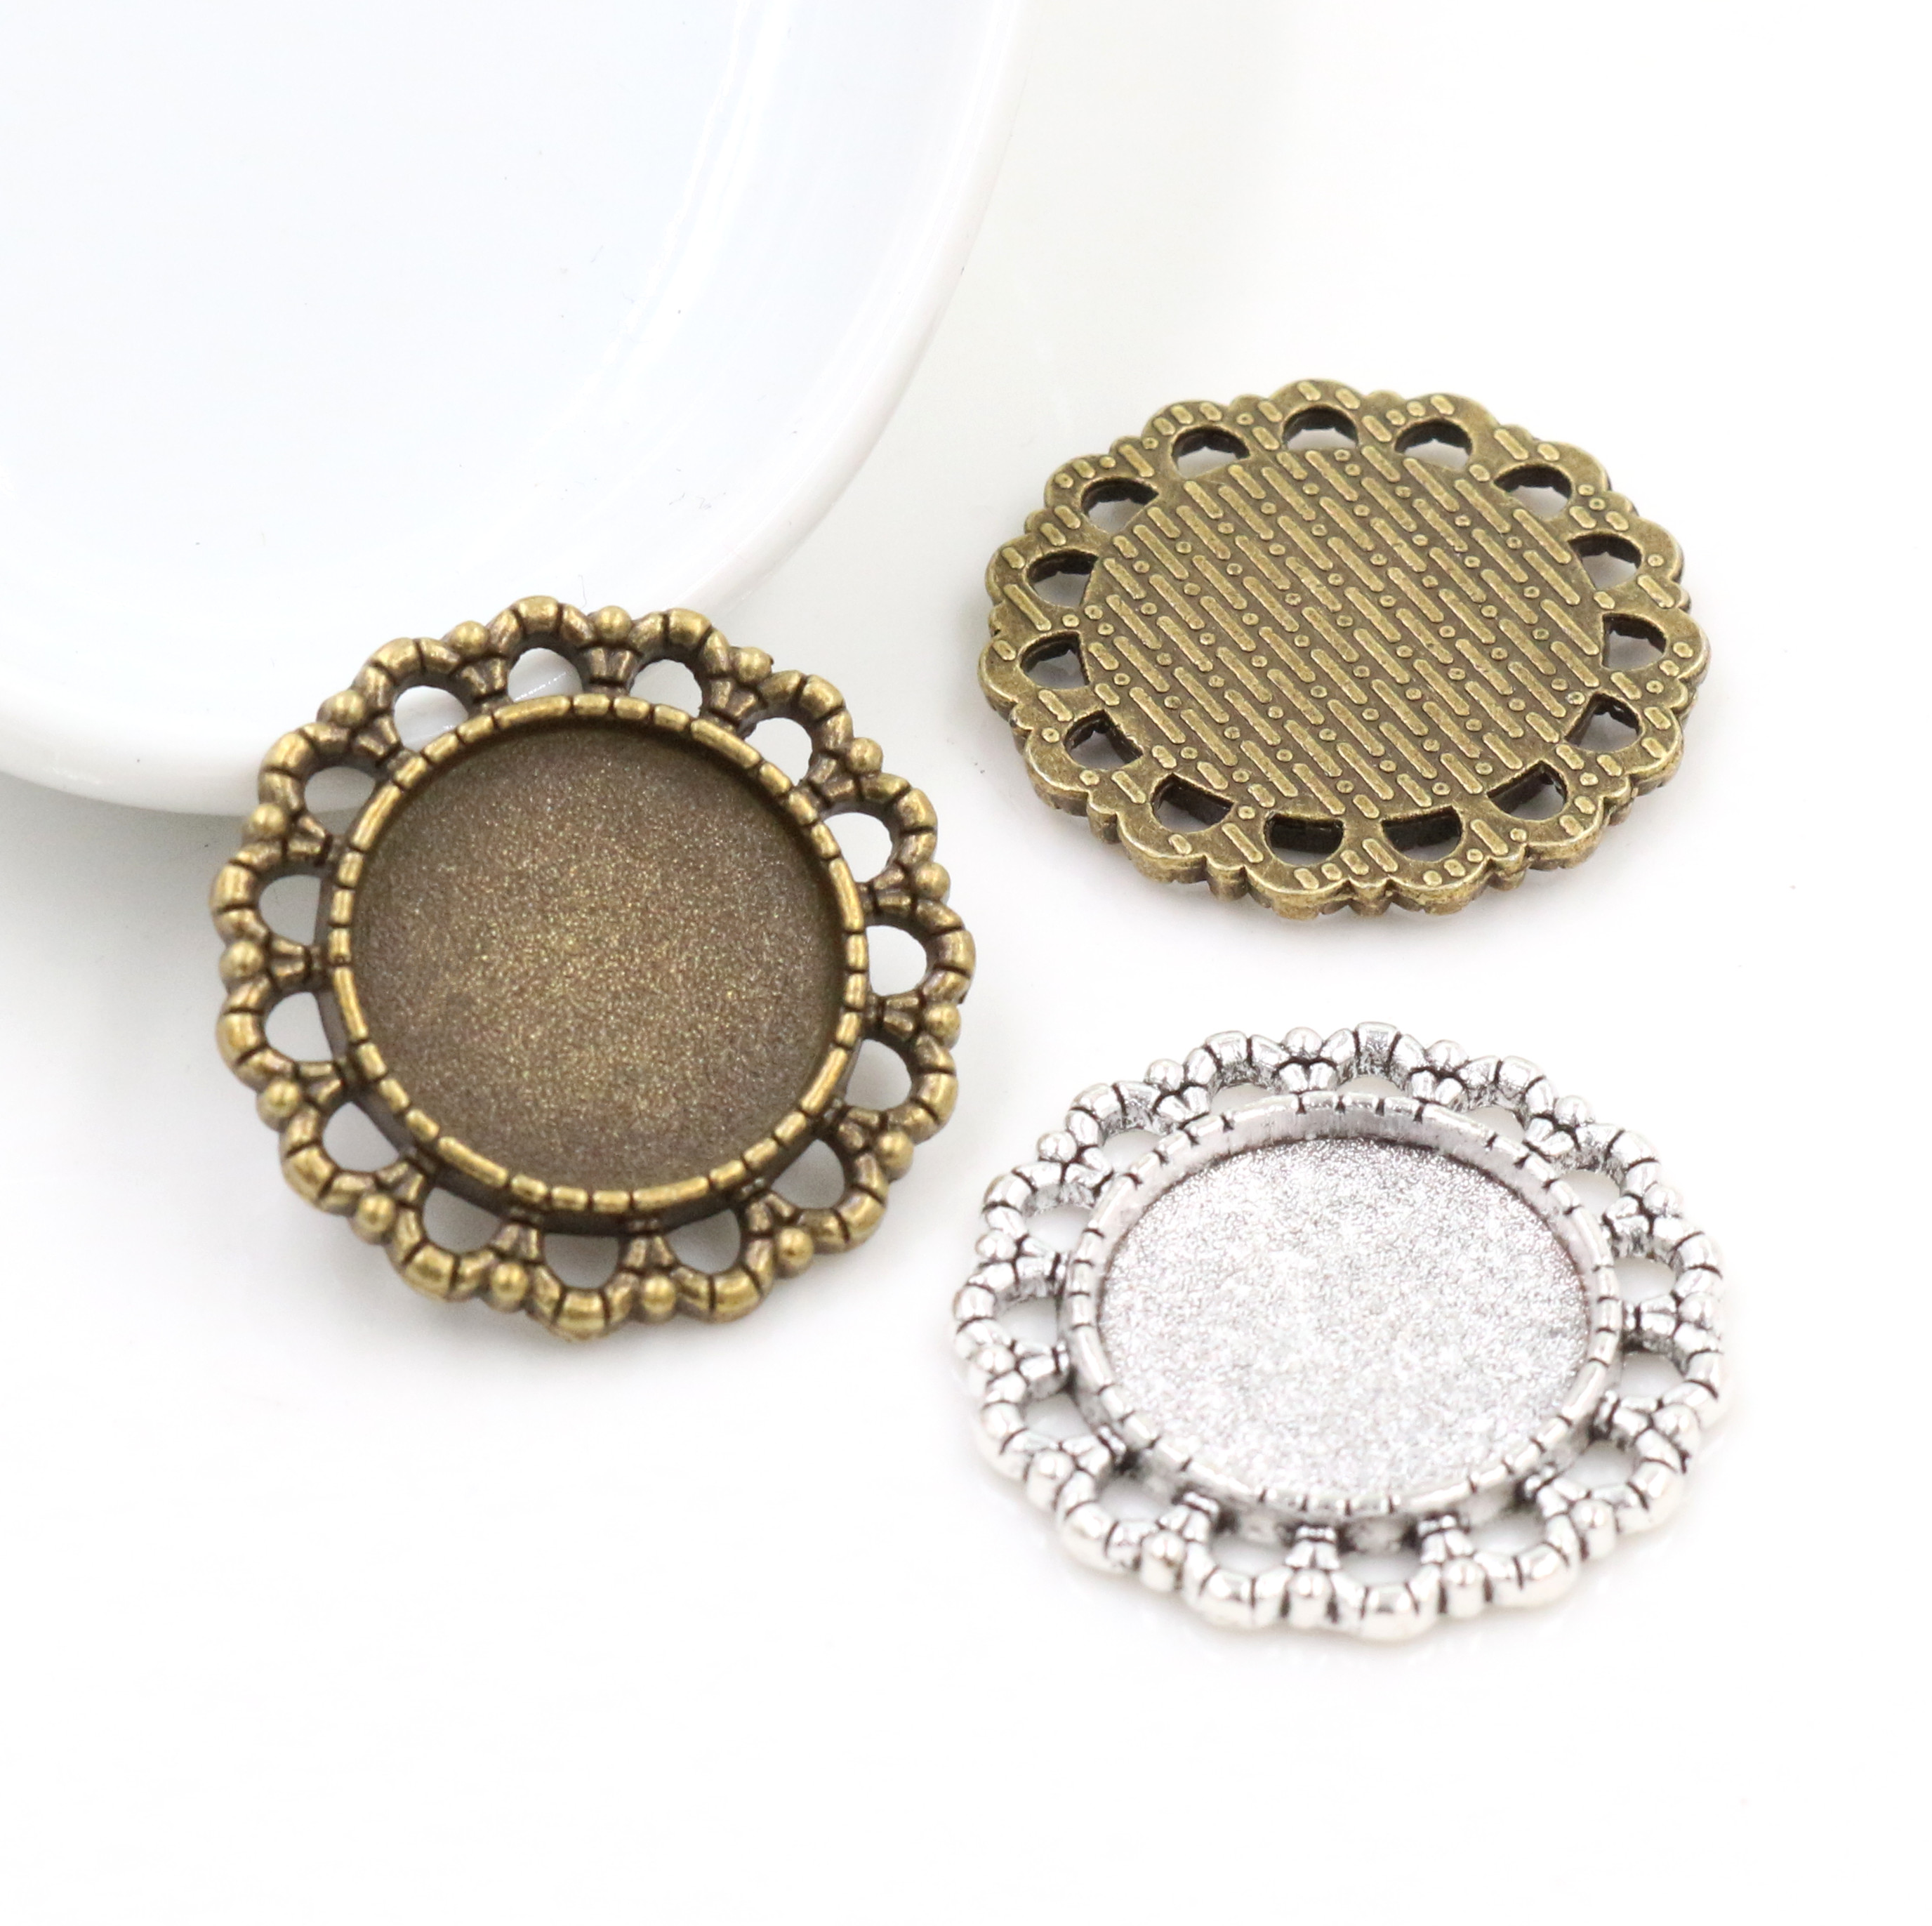 15pcs 16mm Inner Size Antique Bronze And Silver Plated Fashion Style Cabochon Base Cameo Setting Charms Pendant